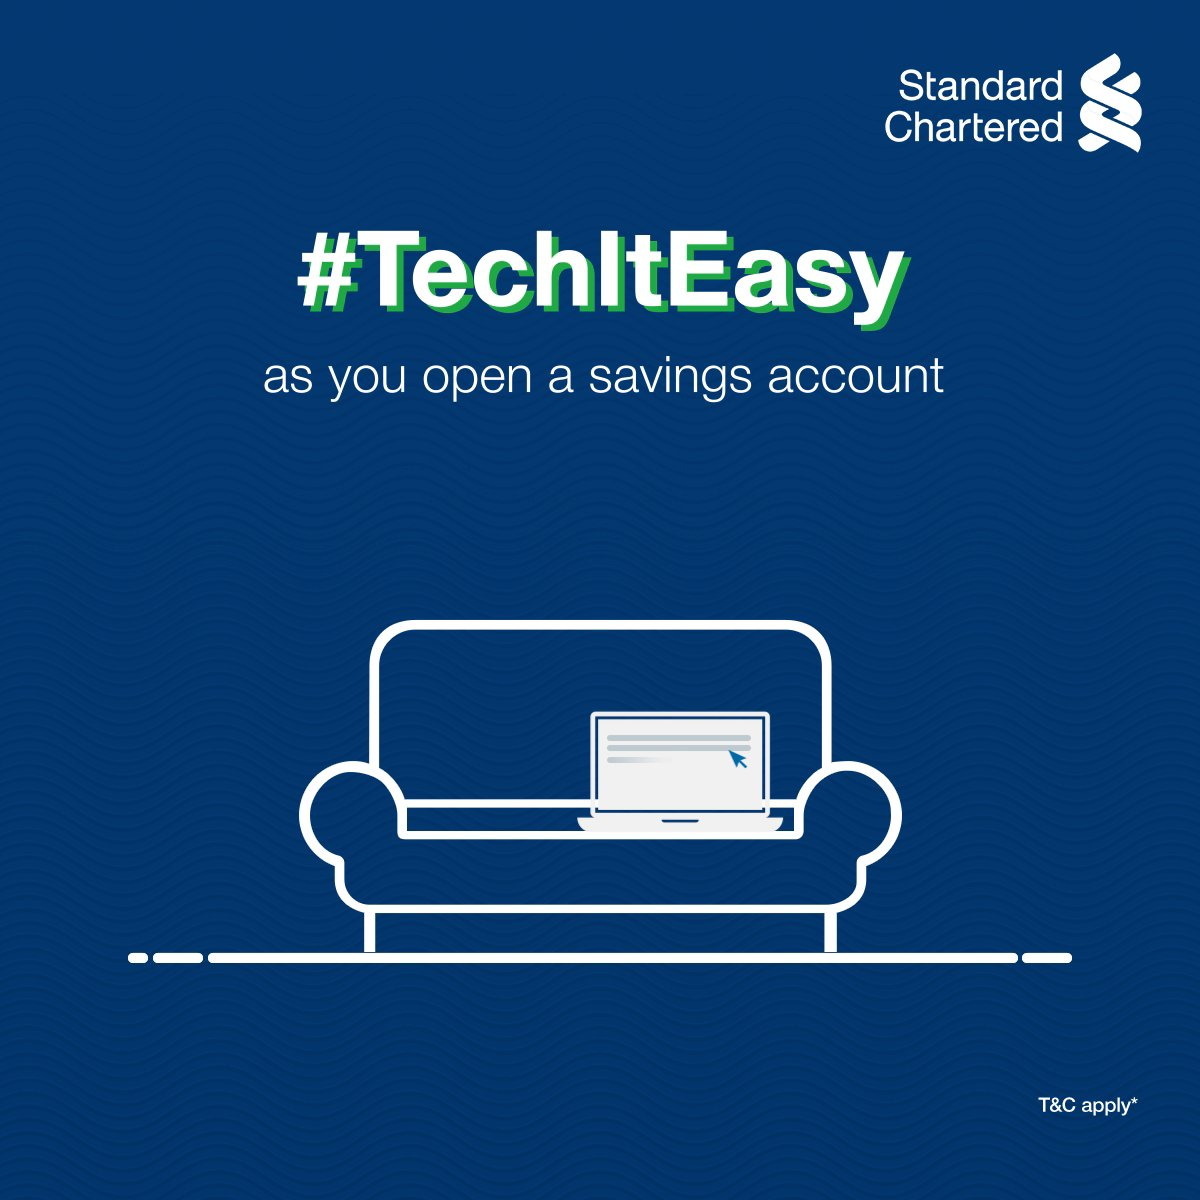 Time is money. So how about you save both? #TechItEasy with Standard Chartered and open a Savings Account within minutes! ✅Simply fill the online form ✅Verify your documents with a Video KYC  ✅Open your account instantly!   To know more,